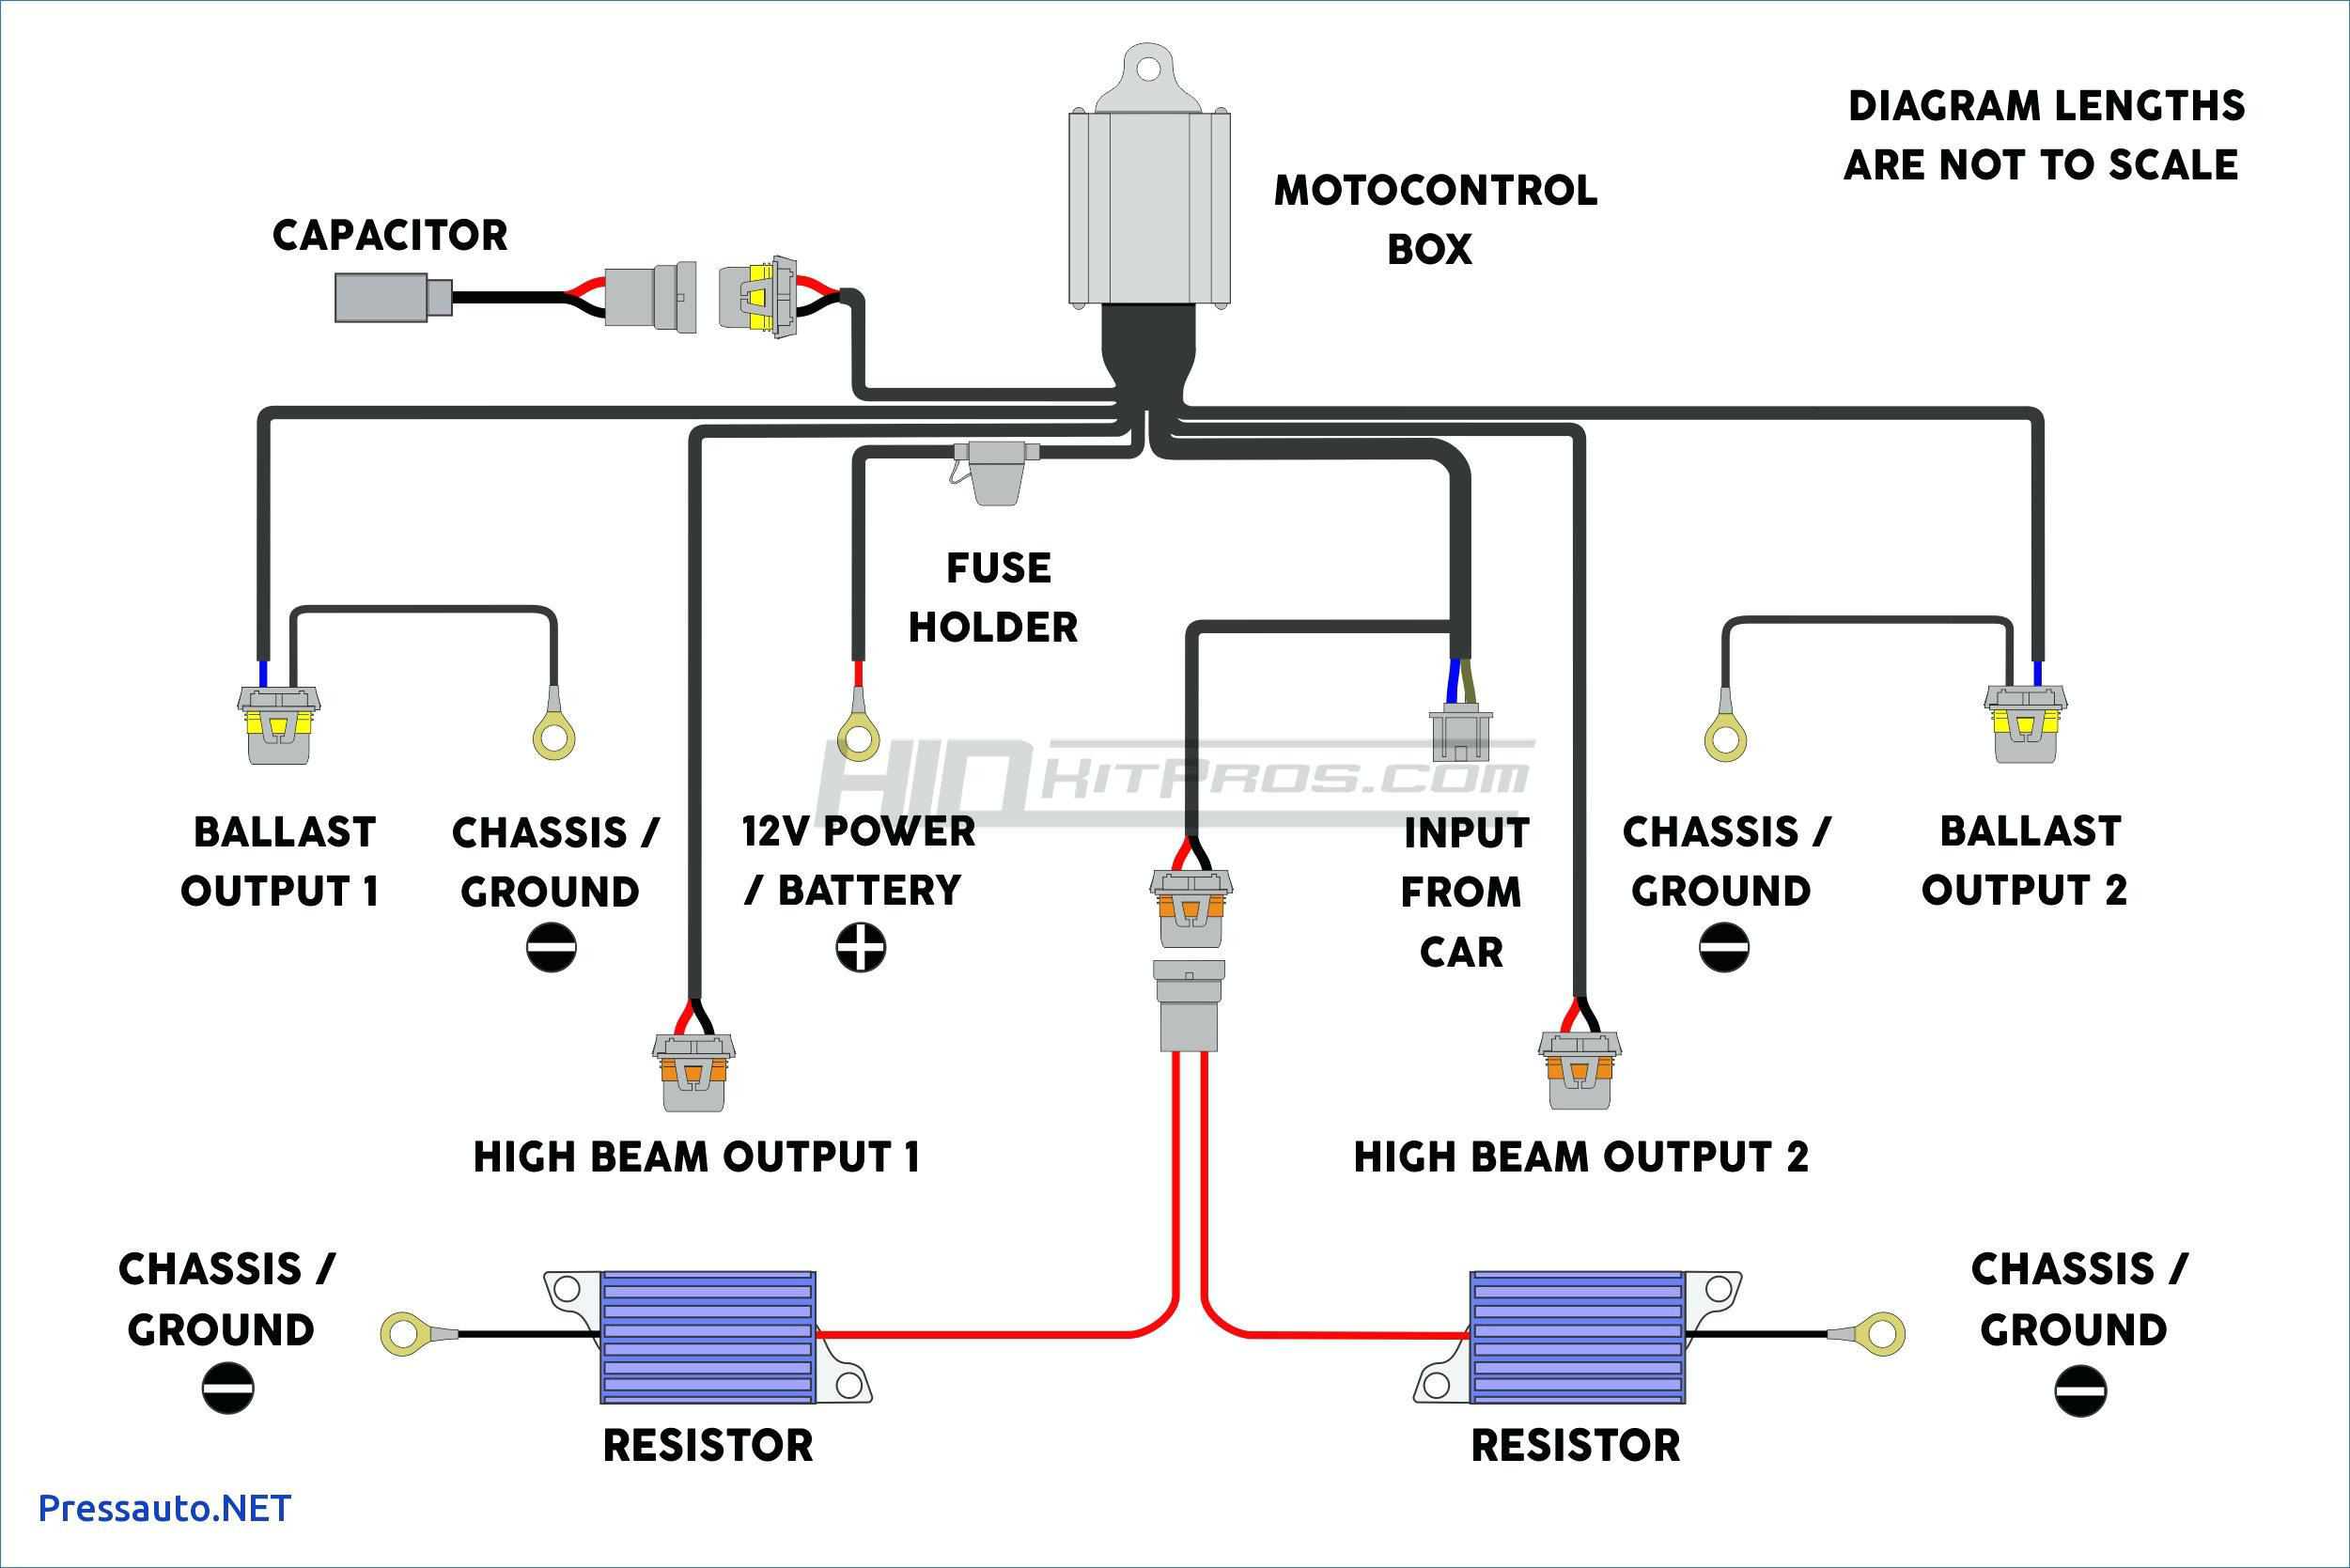 Meyer Toggle Switch Wiring Diagram Electrical Circuit Meyers Snow - Meyer Snowplow Wiring Diagram